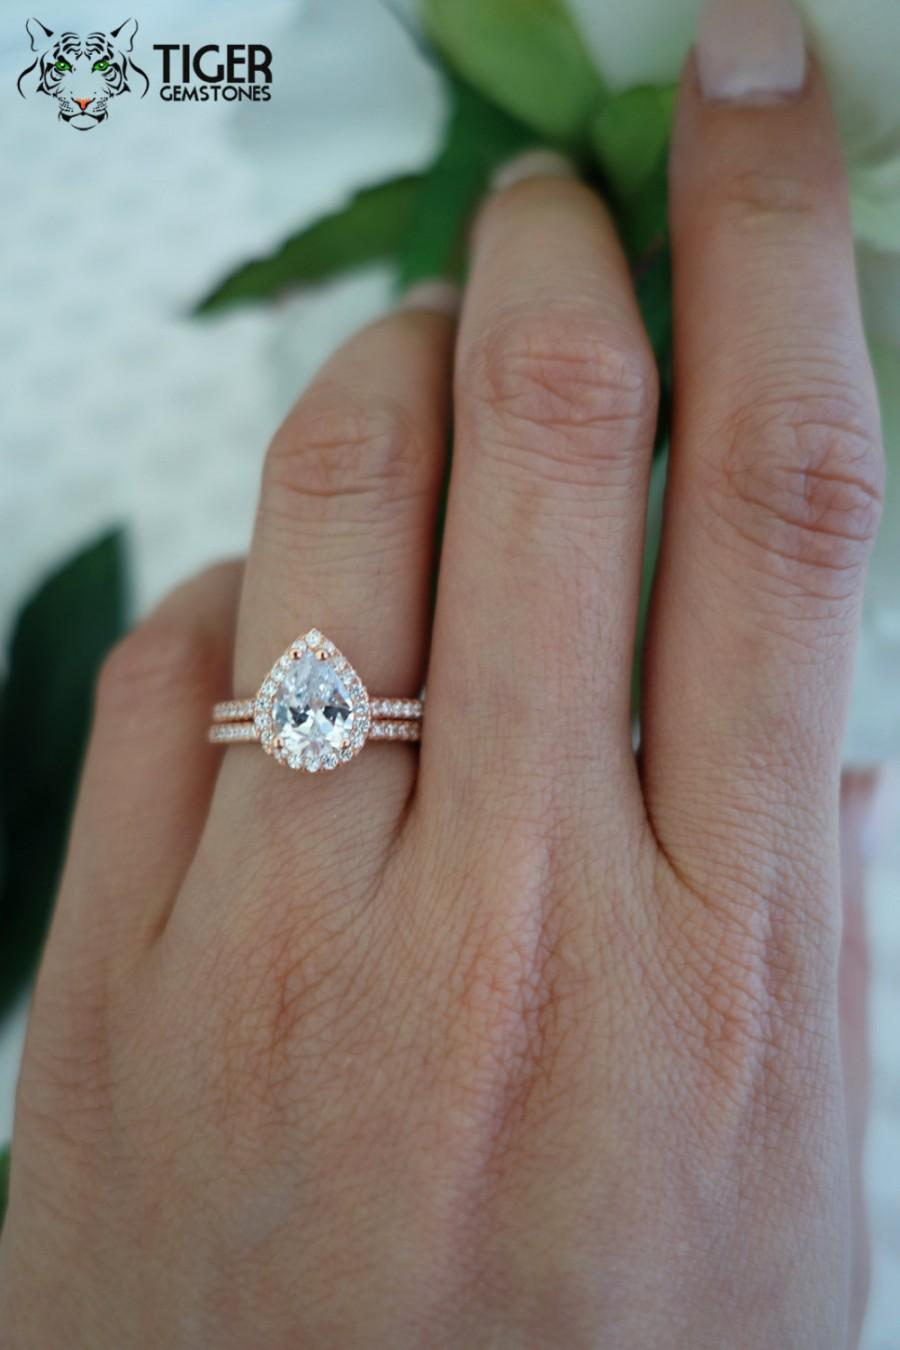 et gold engagement marquise diamond in pear wedding ring engagementdetails cfm white shape moi rings toi